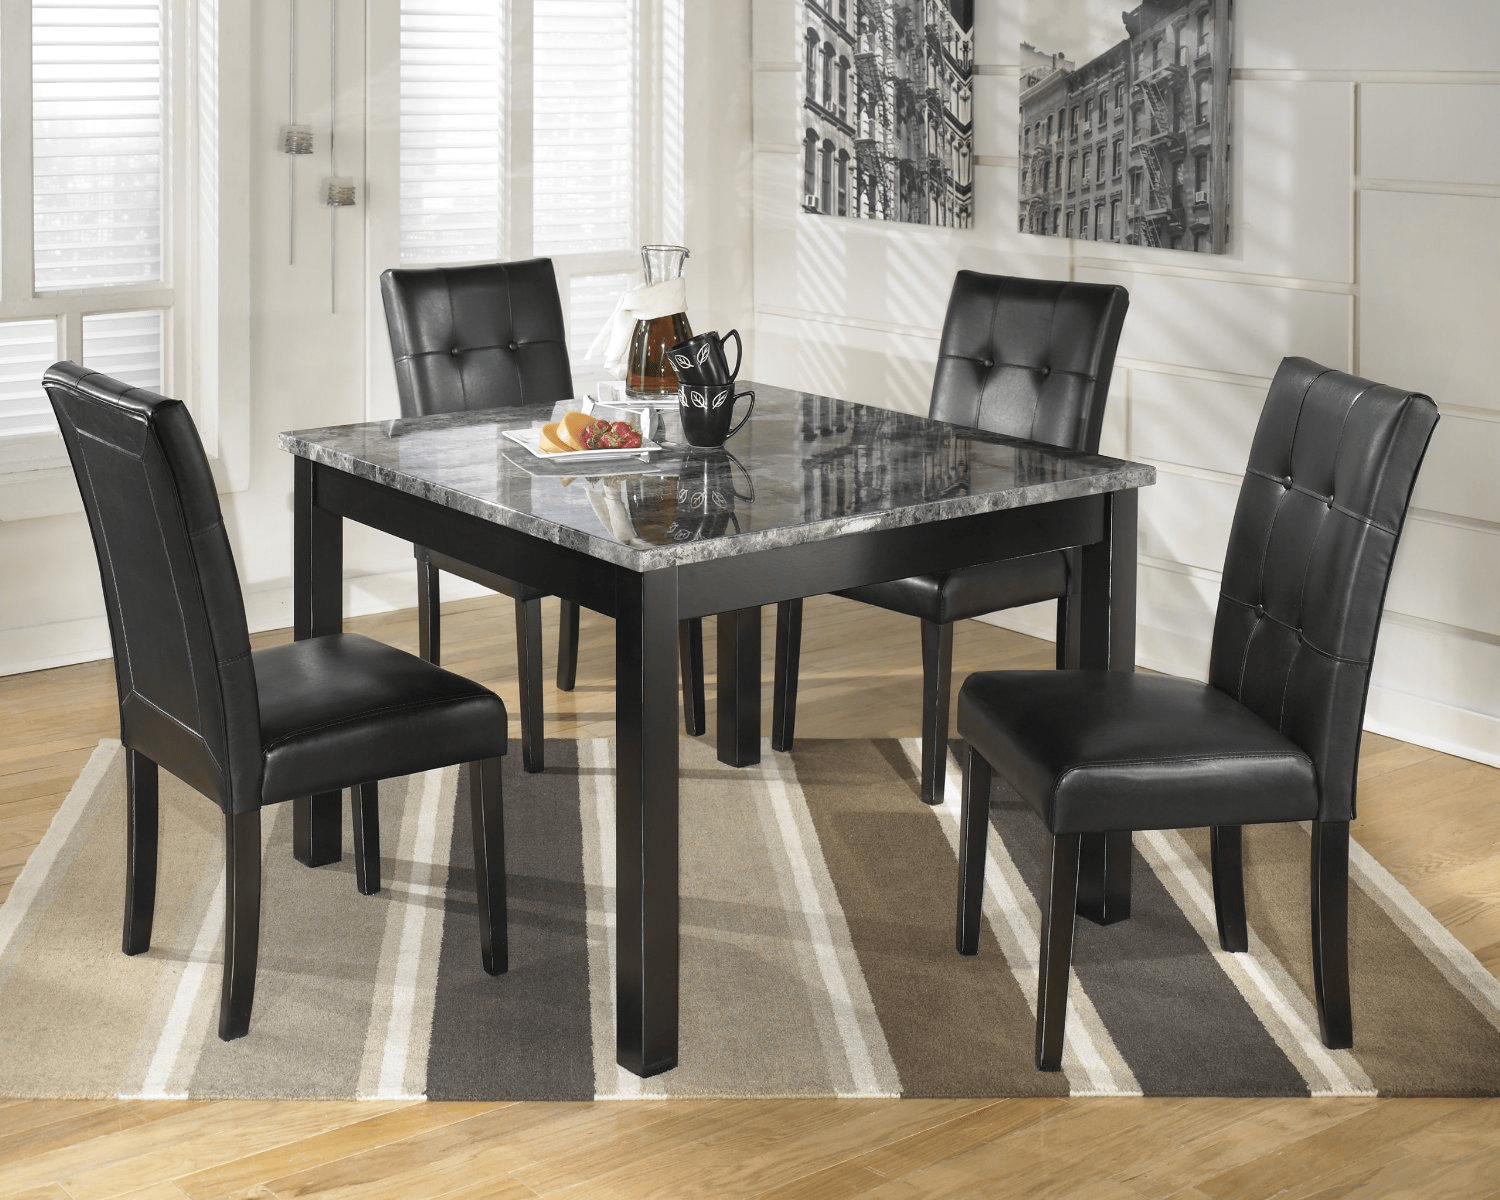 Black Faux Marble Top Dining Table Dining Room Pinterest # Muebles Codimuba